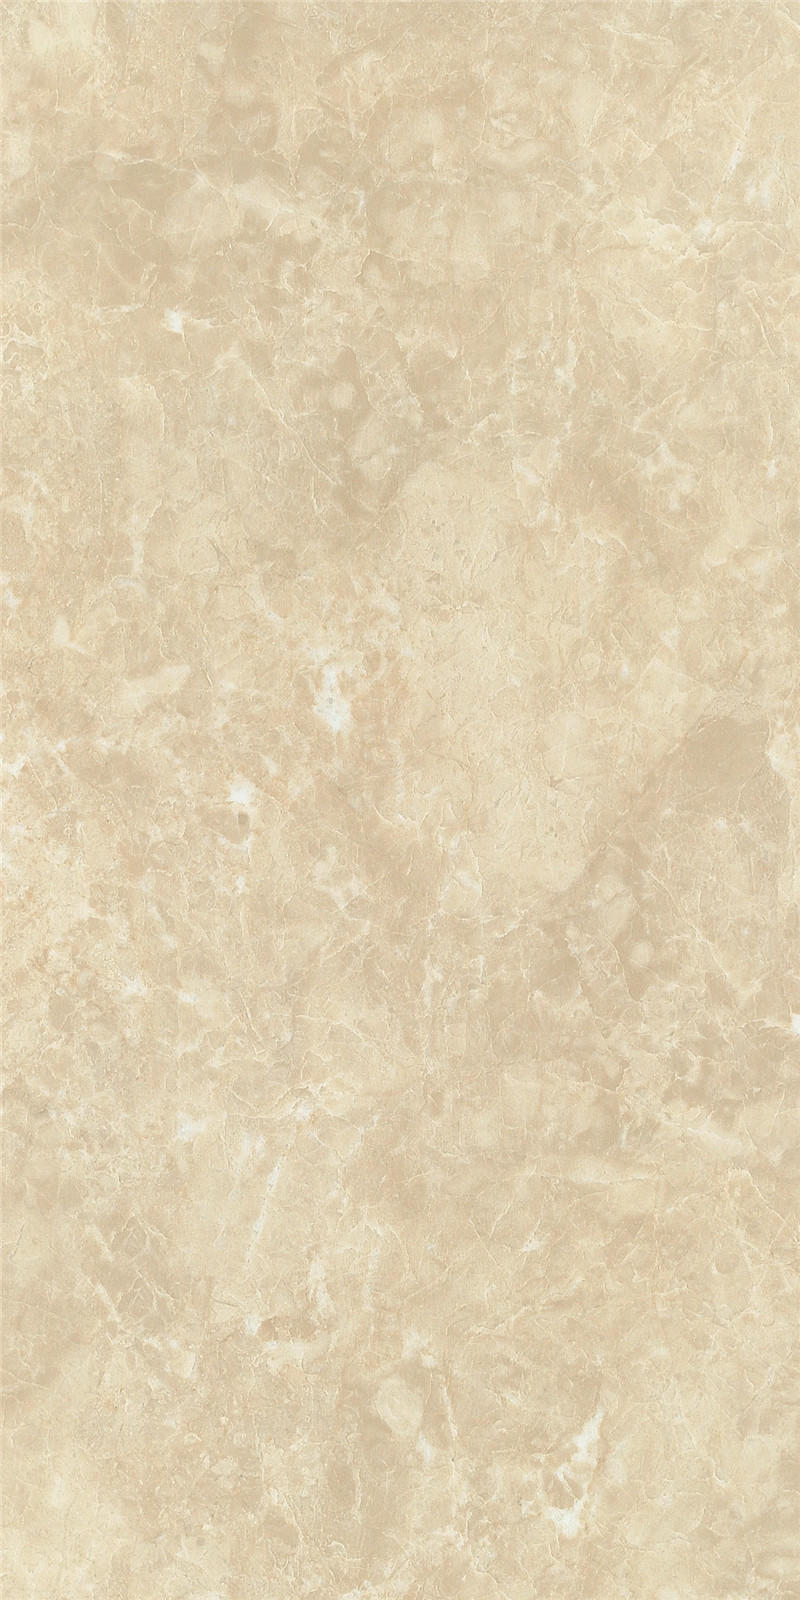 OEM diamond marble tile big brown cheap tiles online